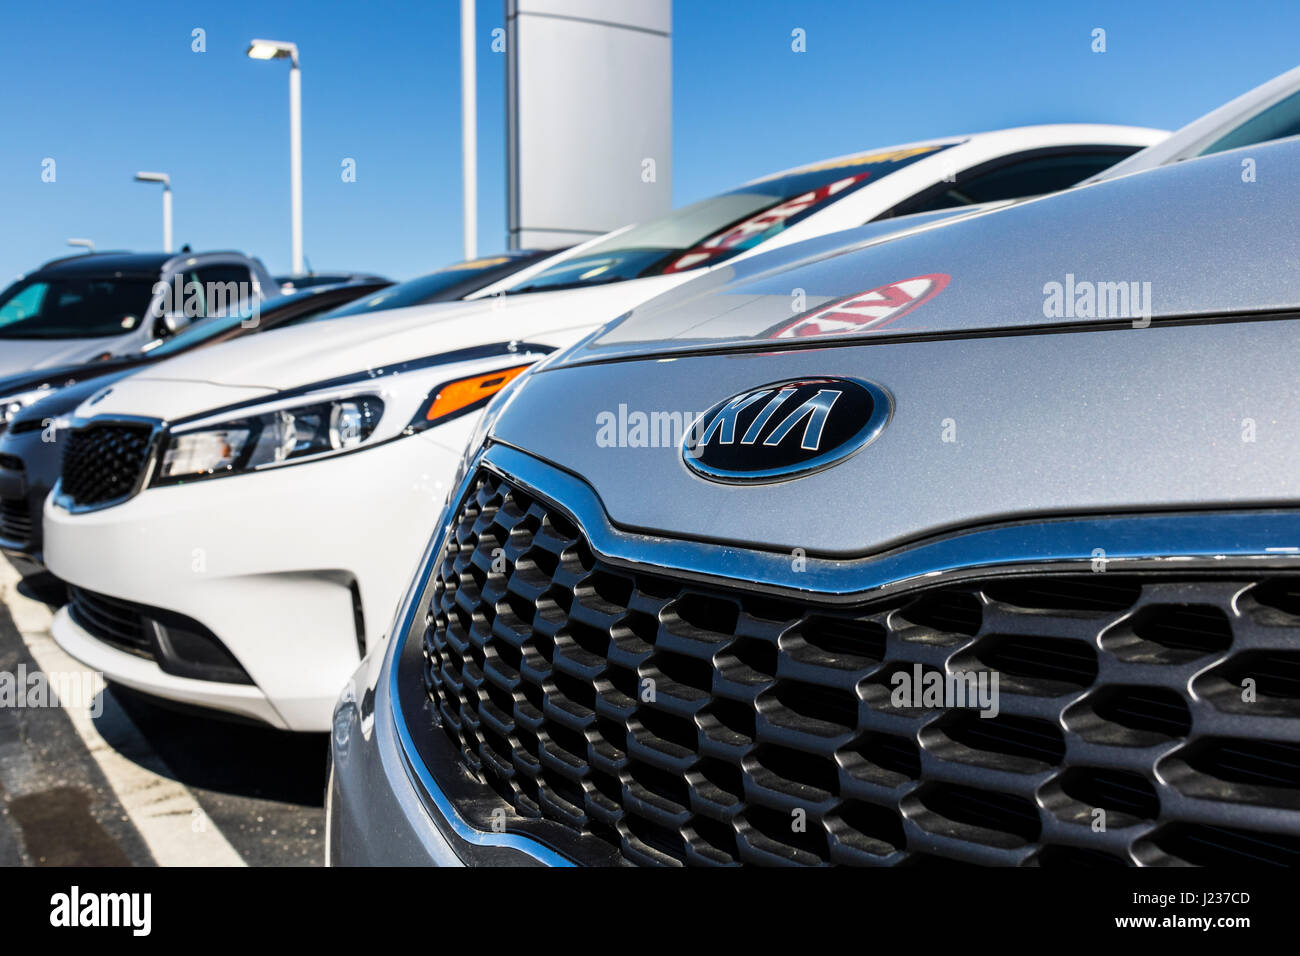 over indianapolis h problem vehicles sedan affected news brake recalled for elantra hyundai light